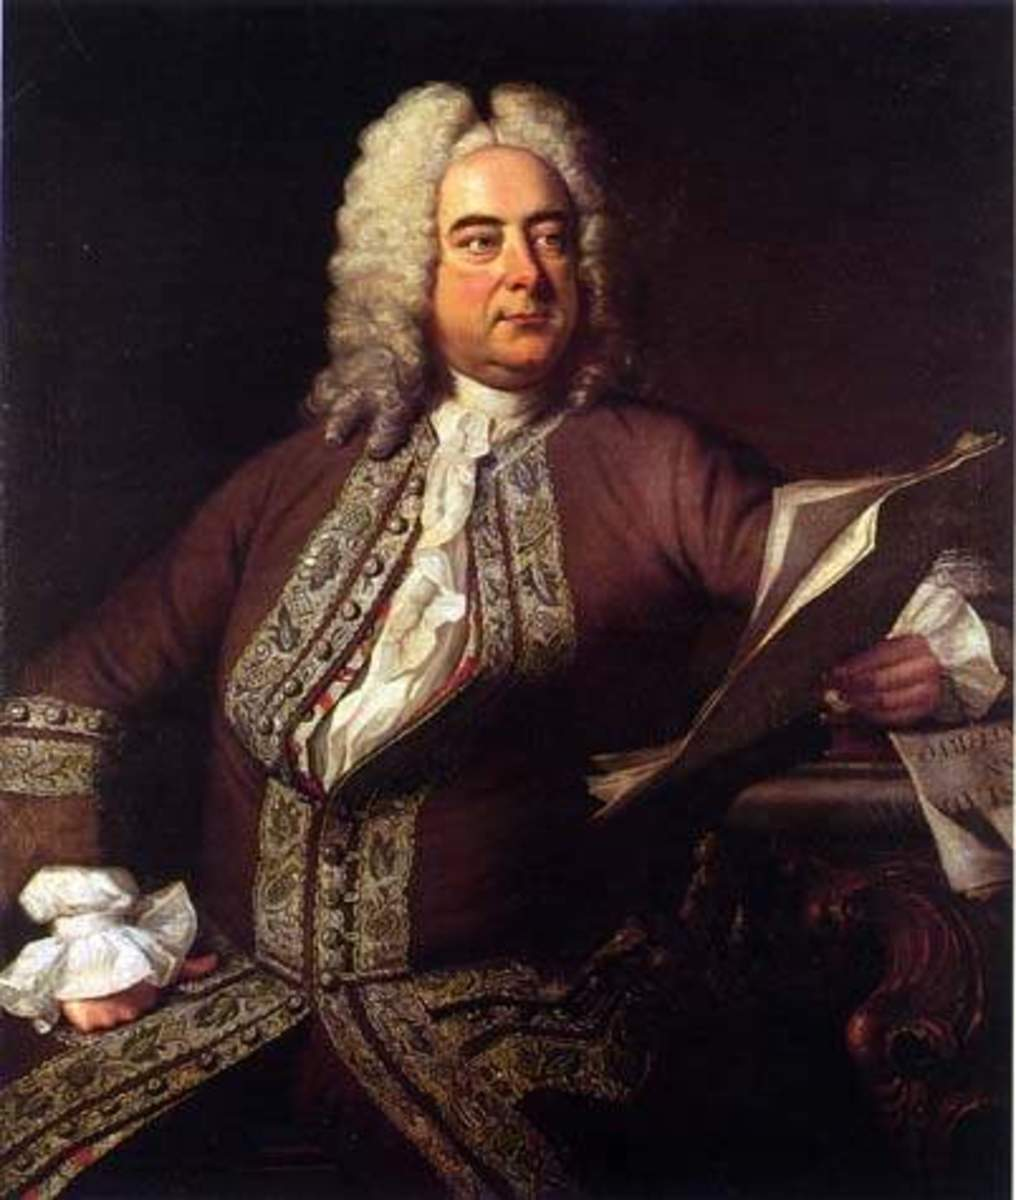 Portrait of Handel by Thomas Hudson in 1741.